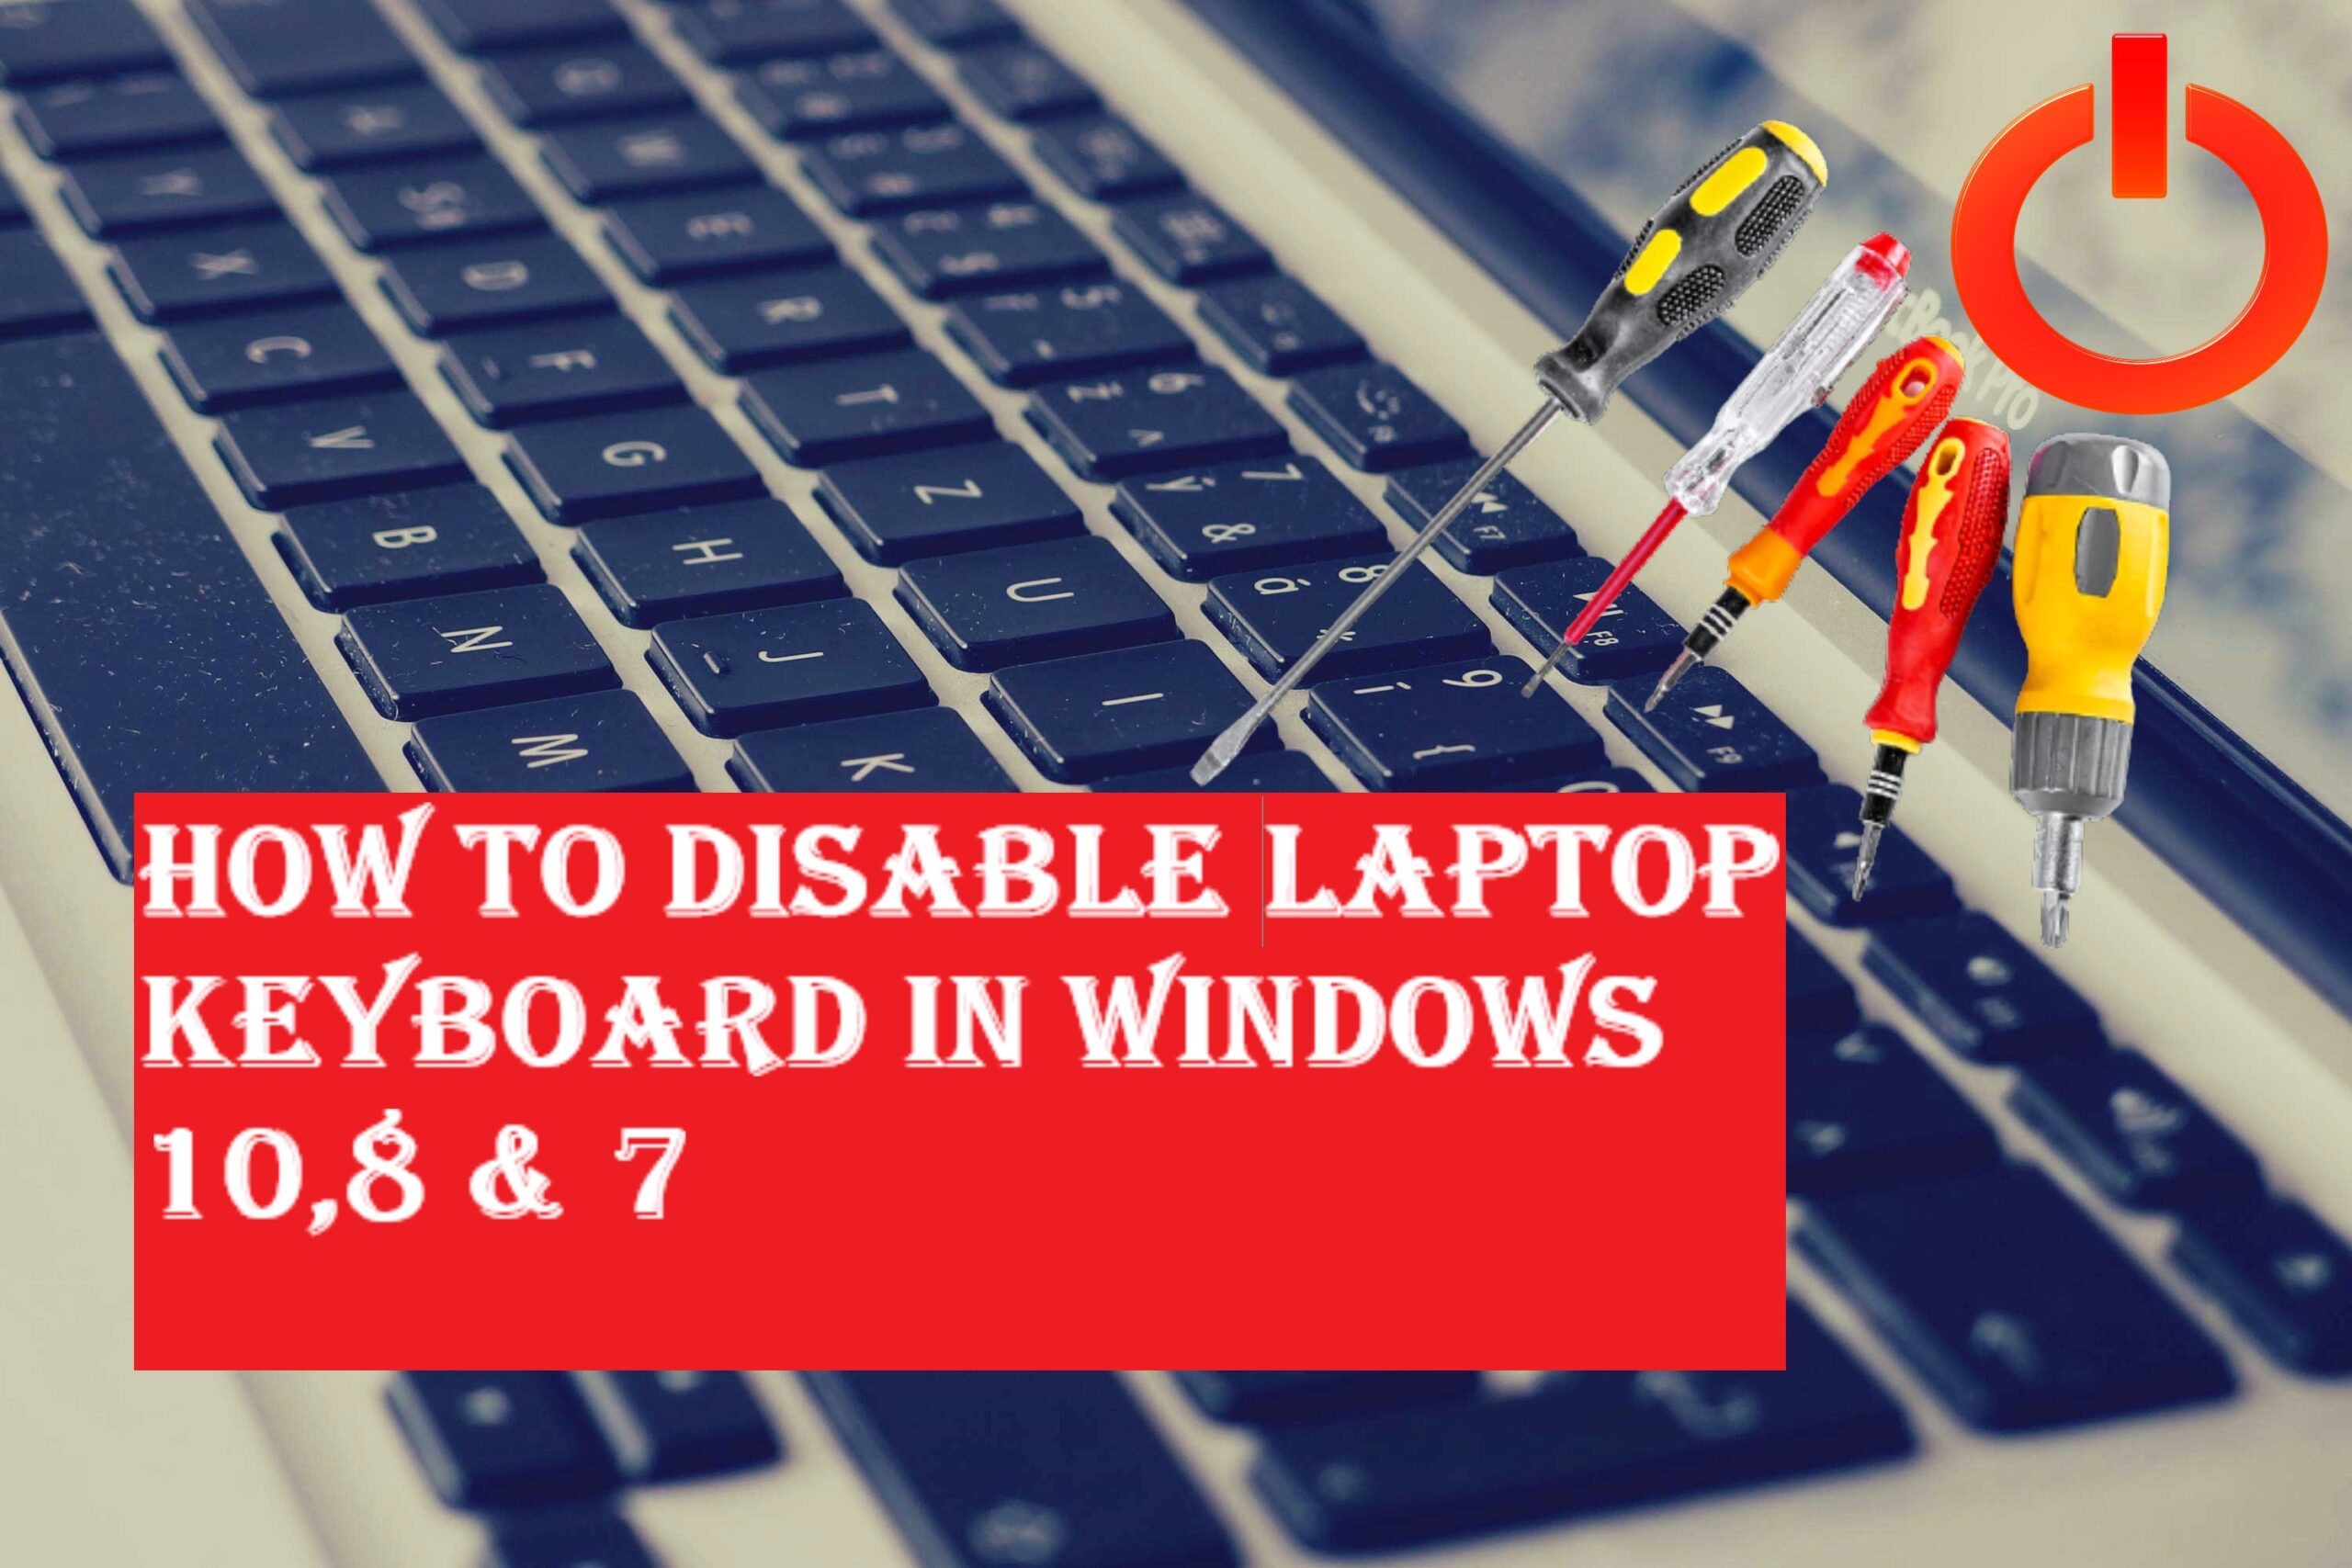 How to Disable Laptop Keyboard In Windows 10,8 & 7